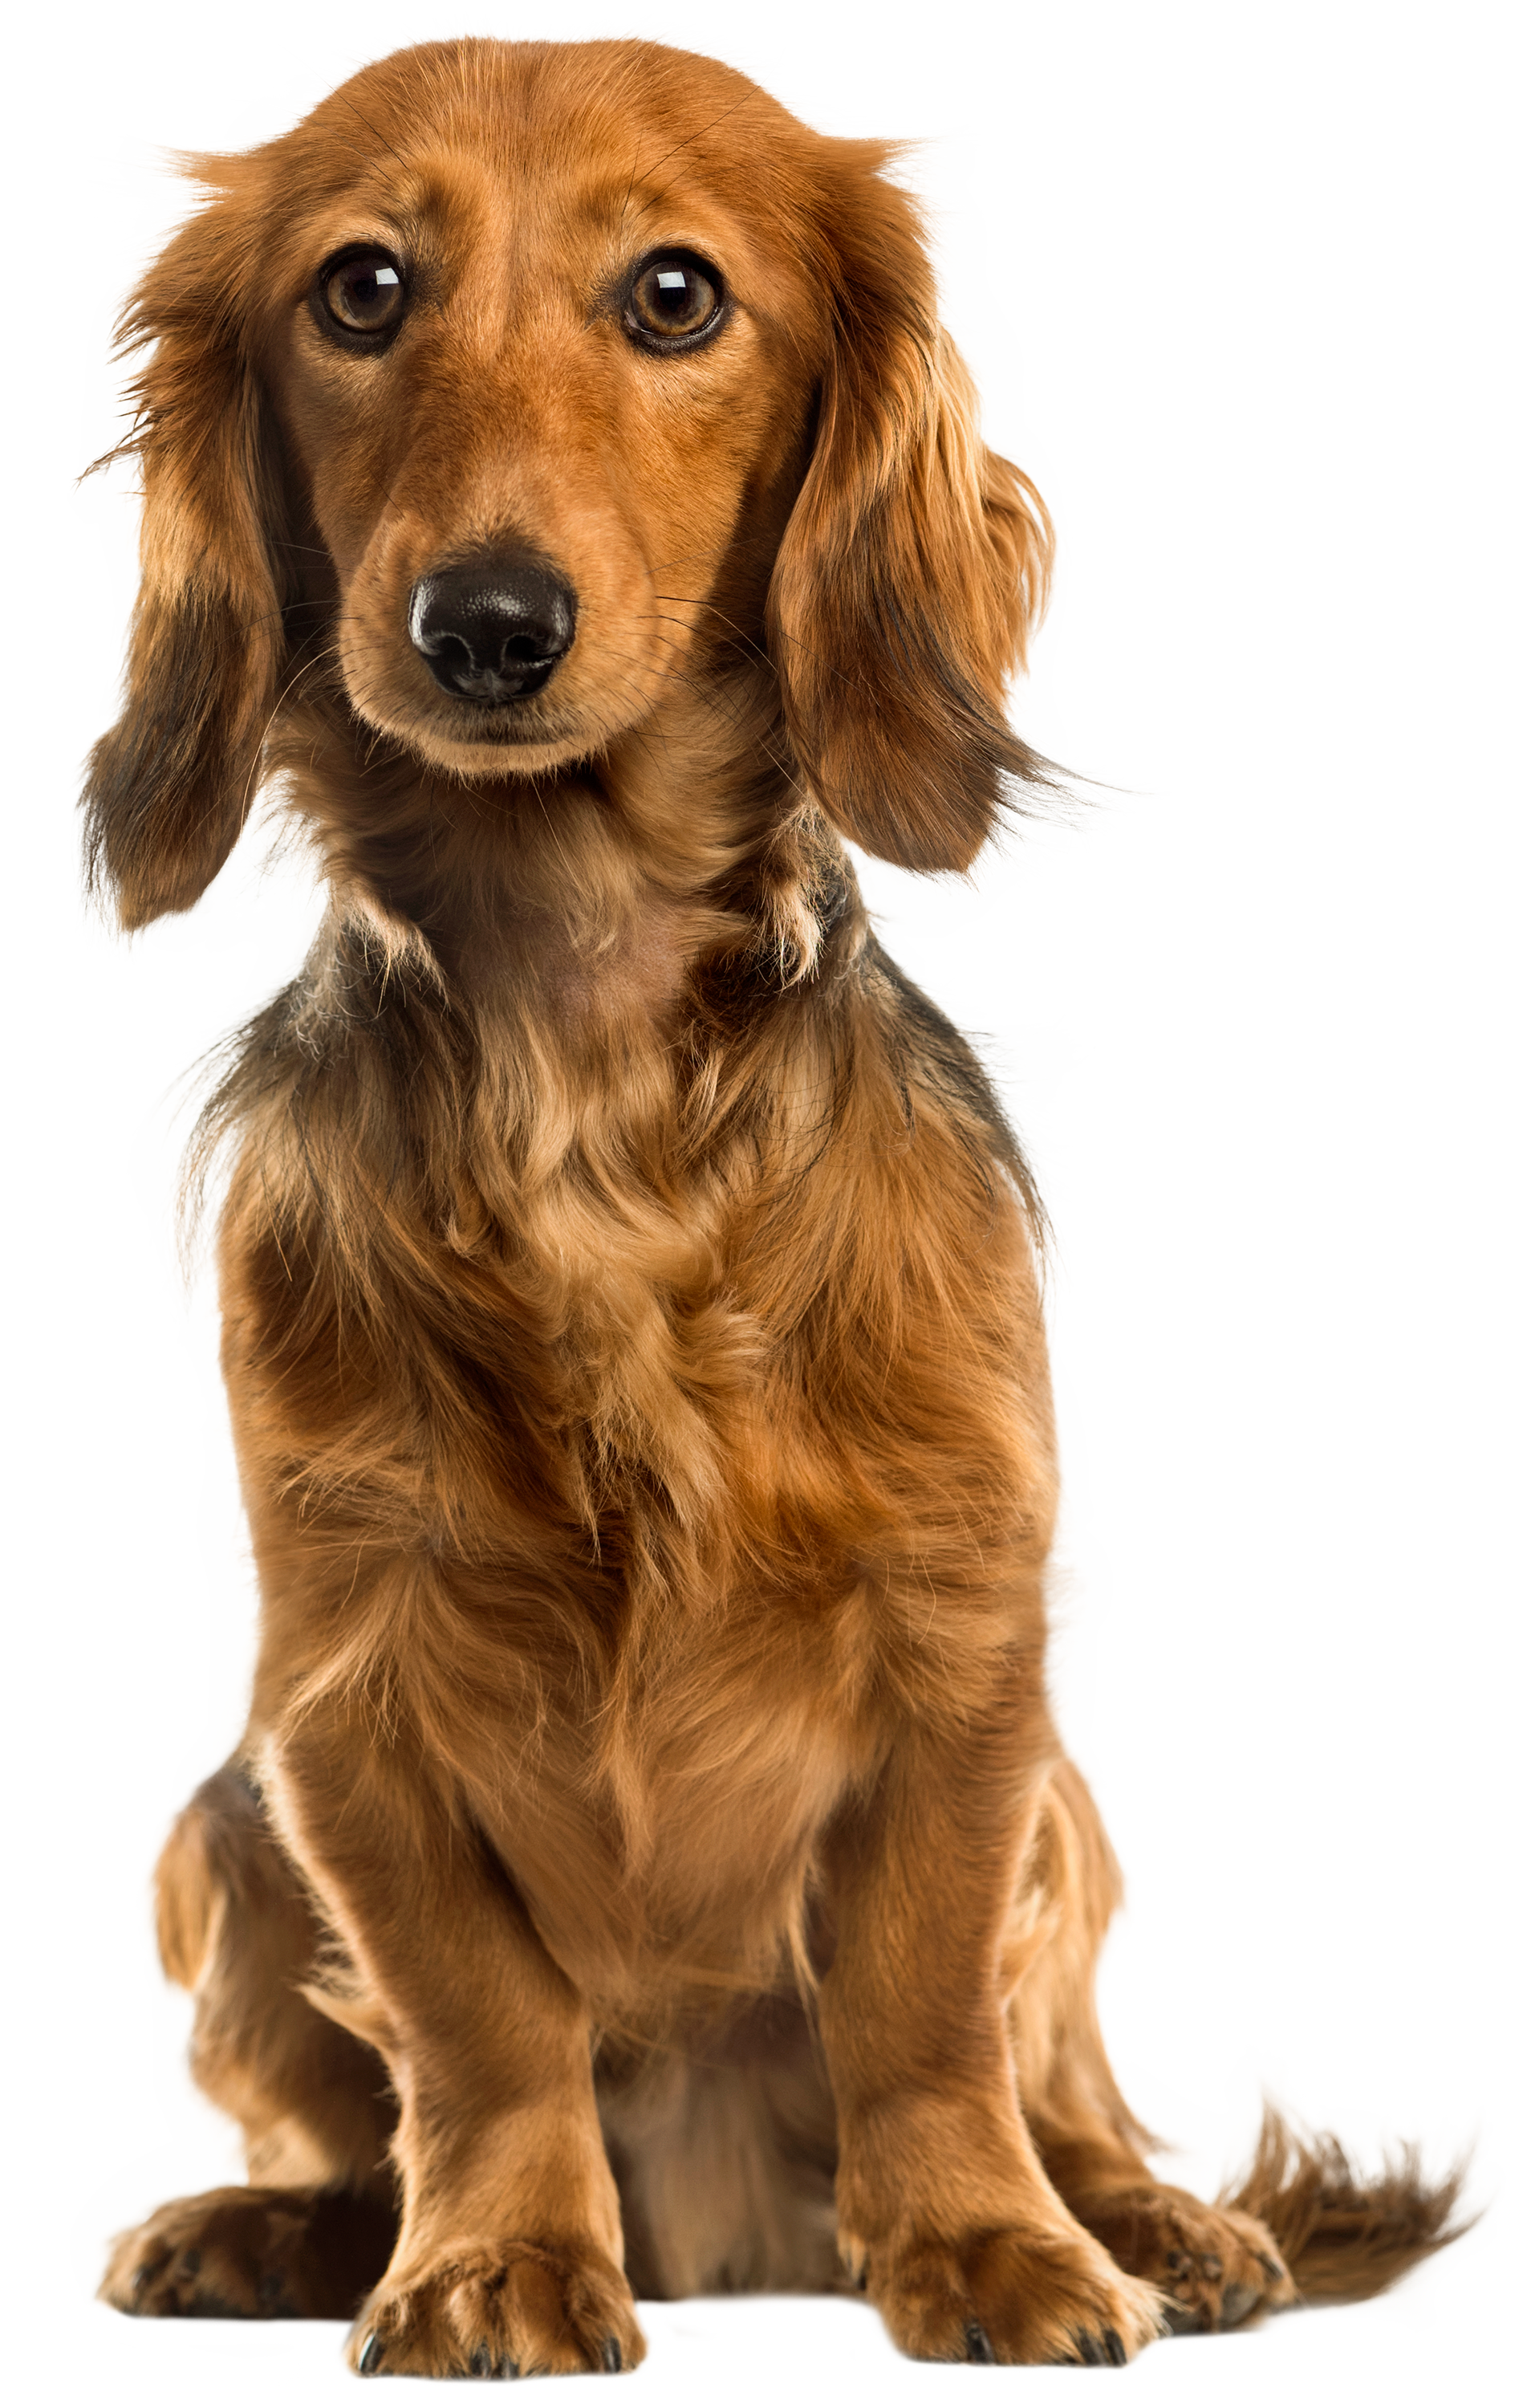 Dog Png - Cute Dog PNG Clip Art